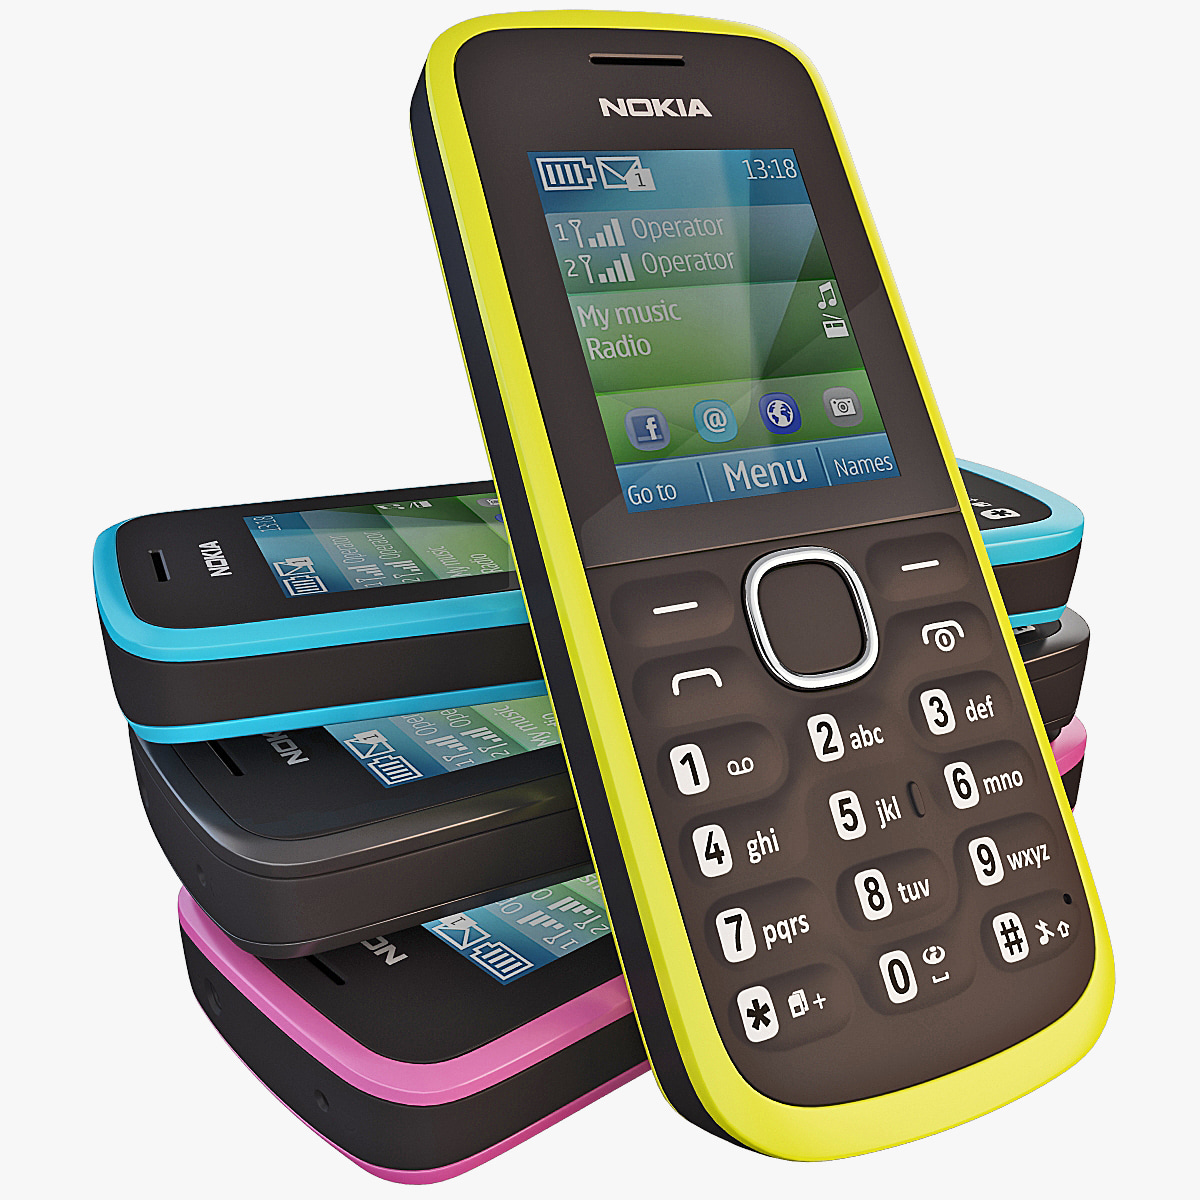 New software update for Nokia Nokia and Nokia - Microsoft Community